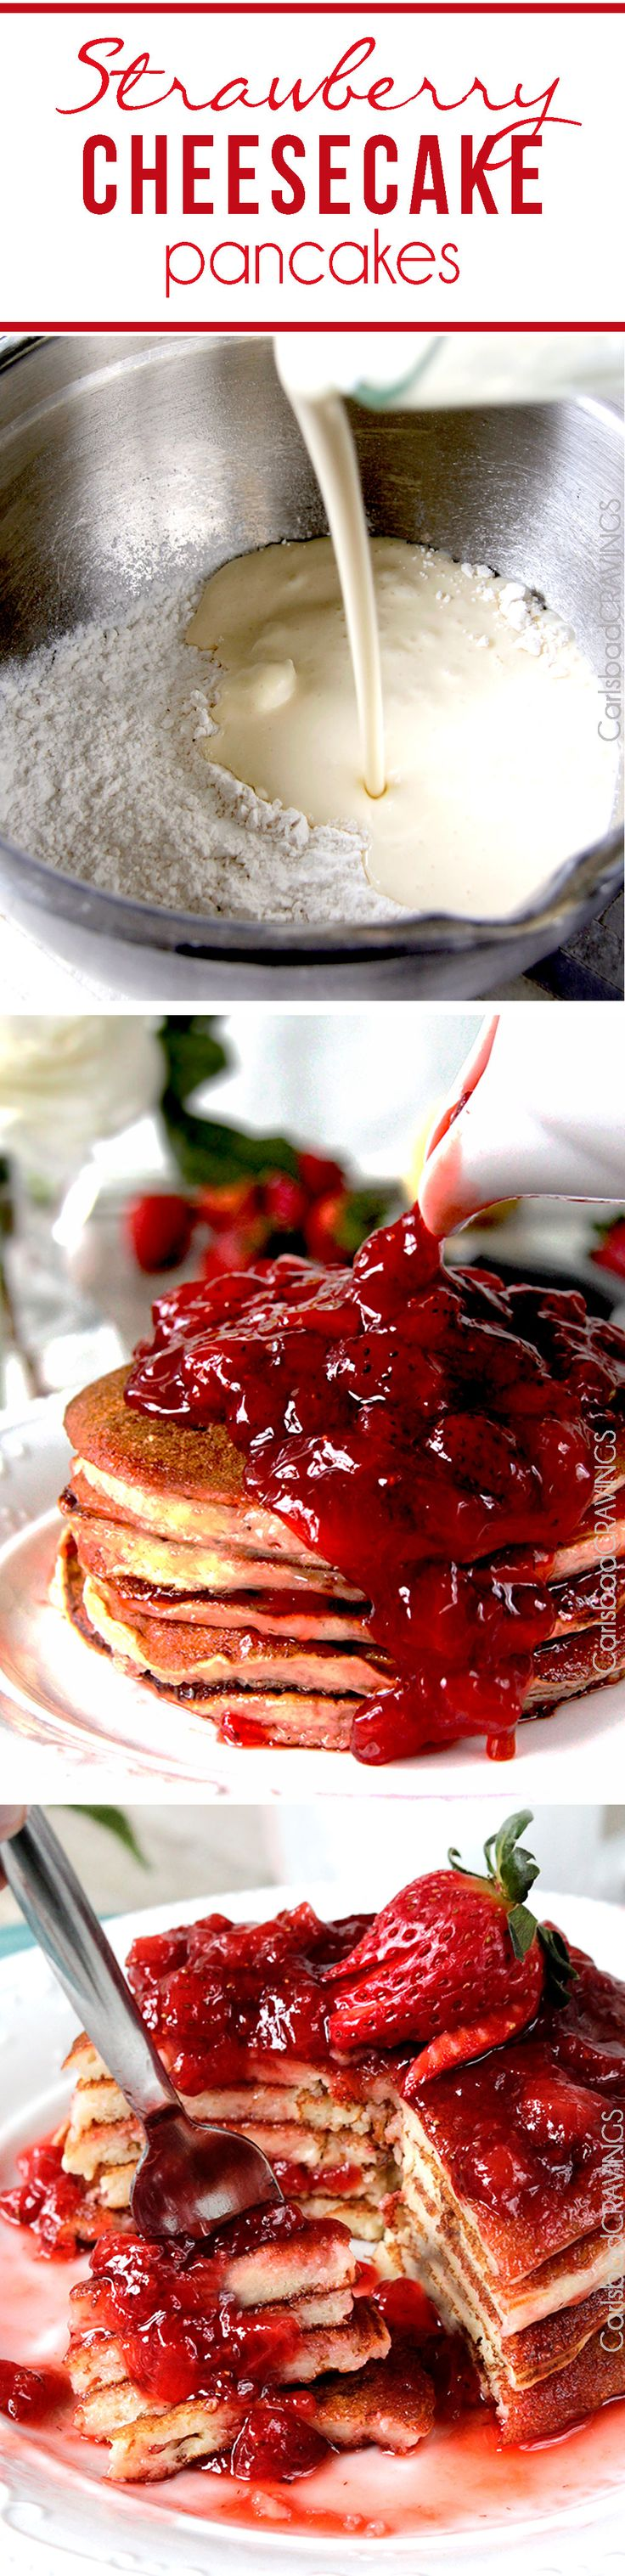 Easy Strawberry Cheesecake Pancakes